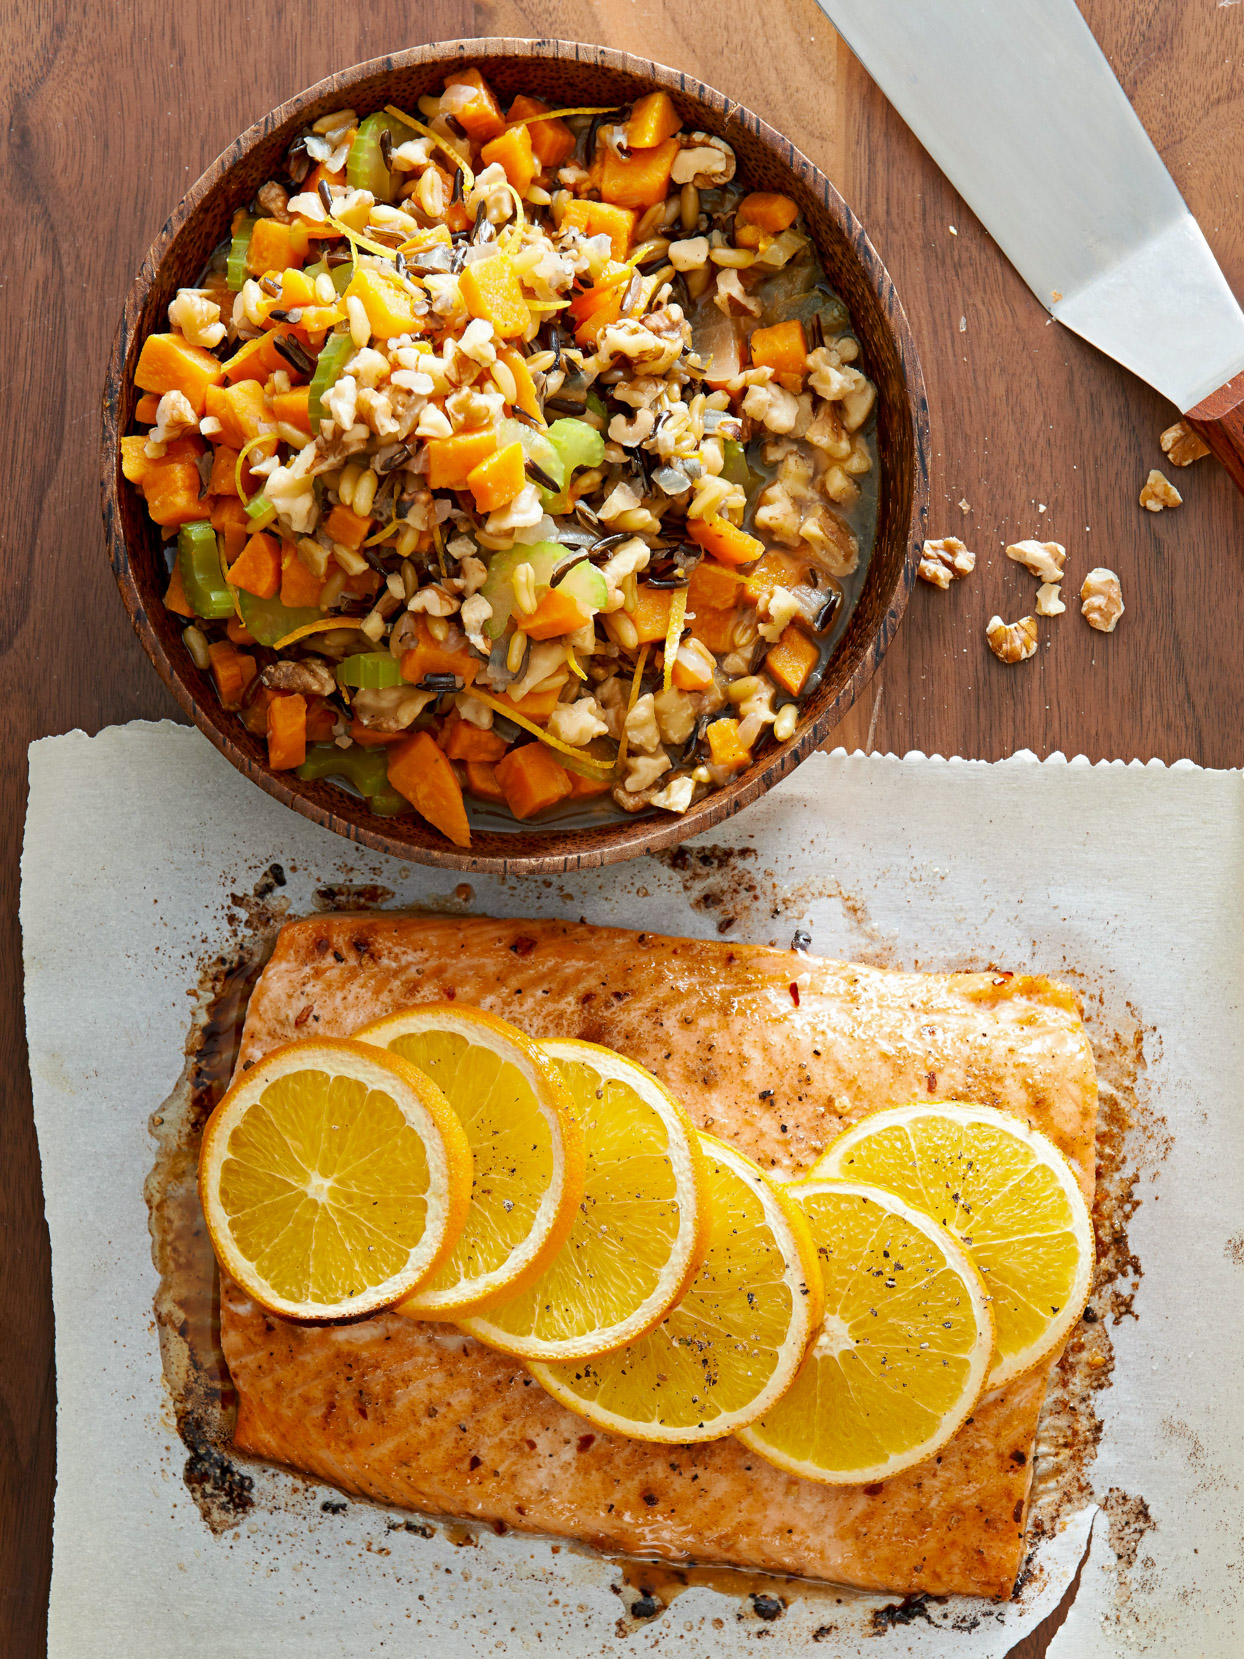 Warm Sweet Potato and Kamut Salad with Salmon and Walnuts